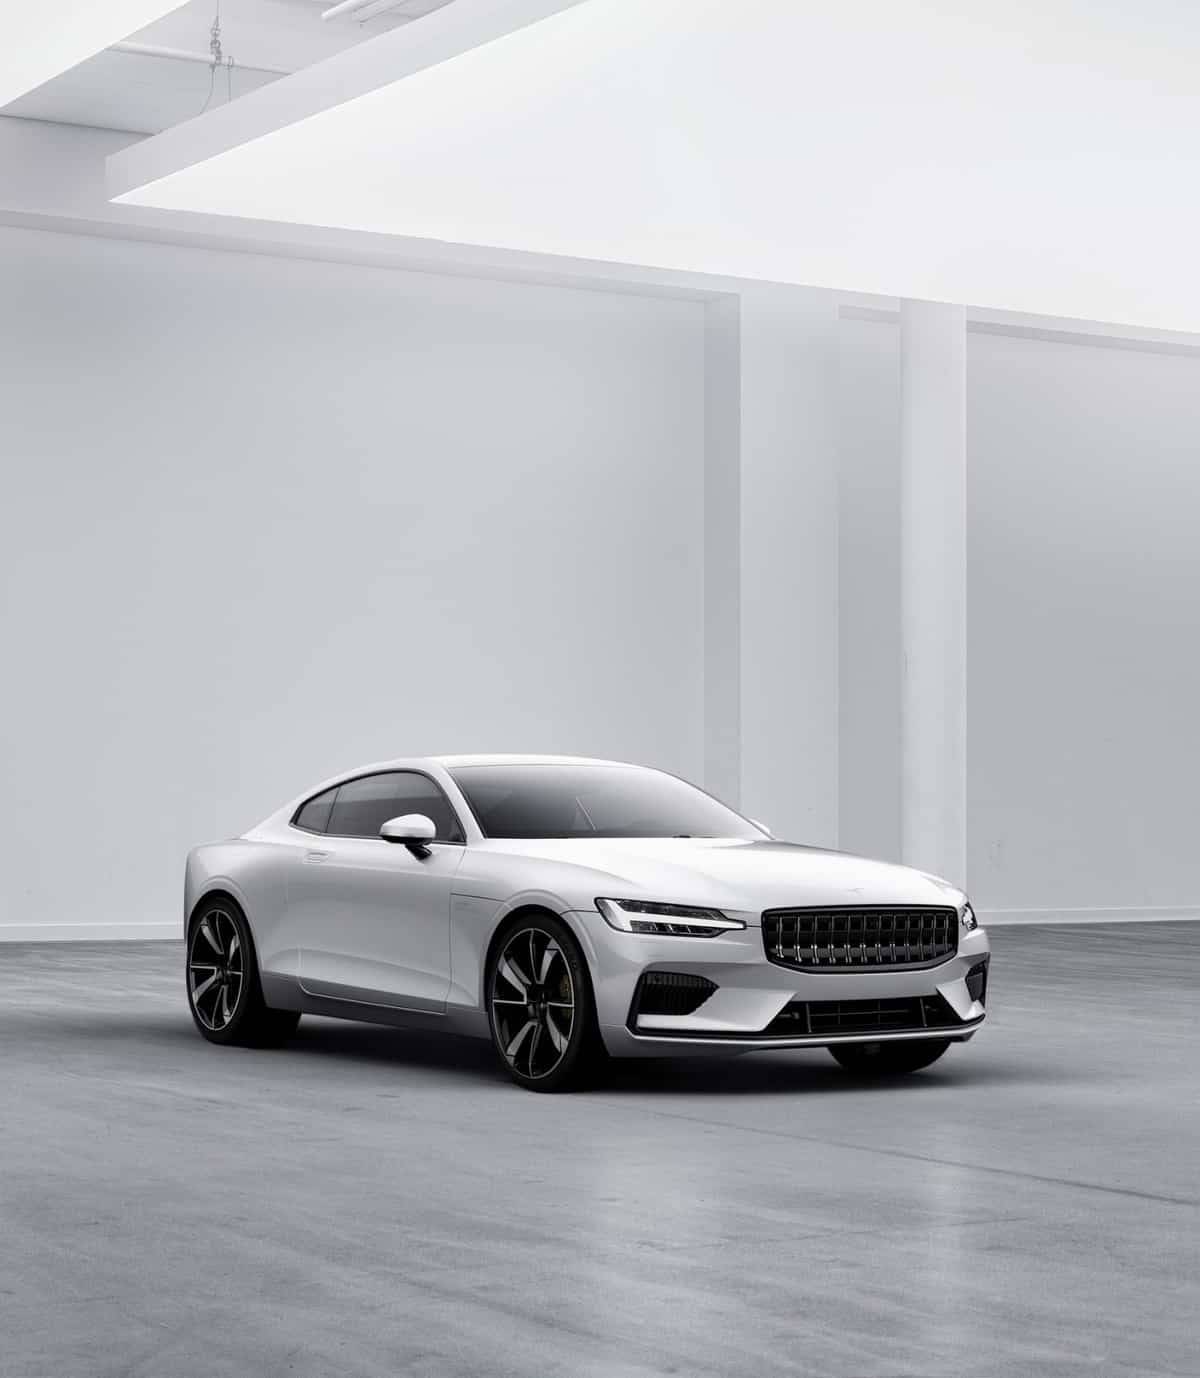 The Stunning Polestar 1 Hybrid Coupe Has Just Arrived